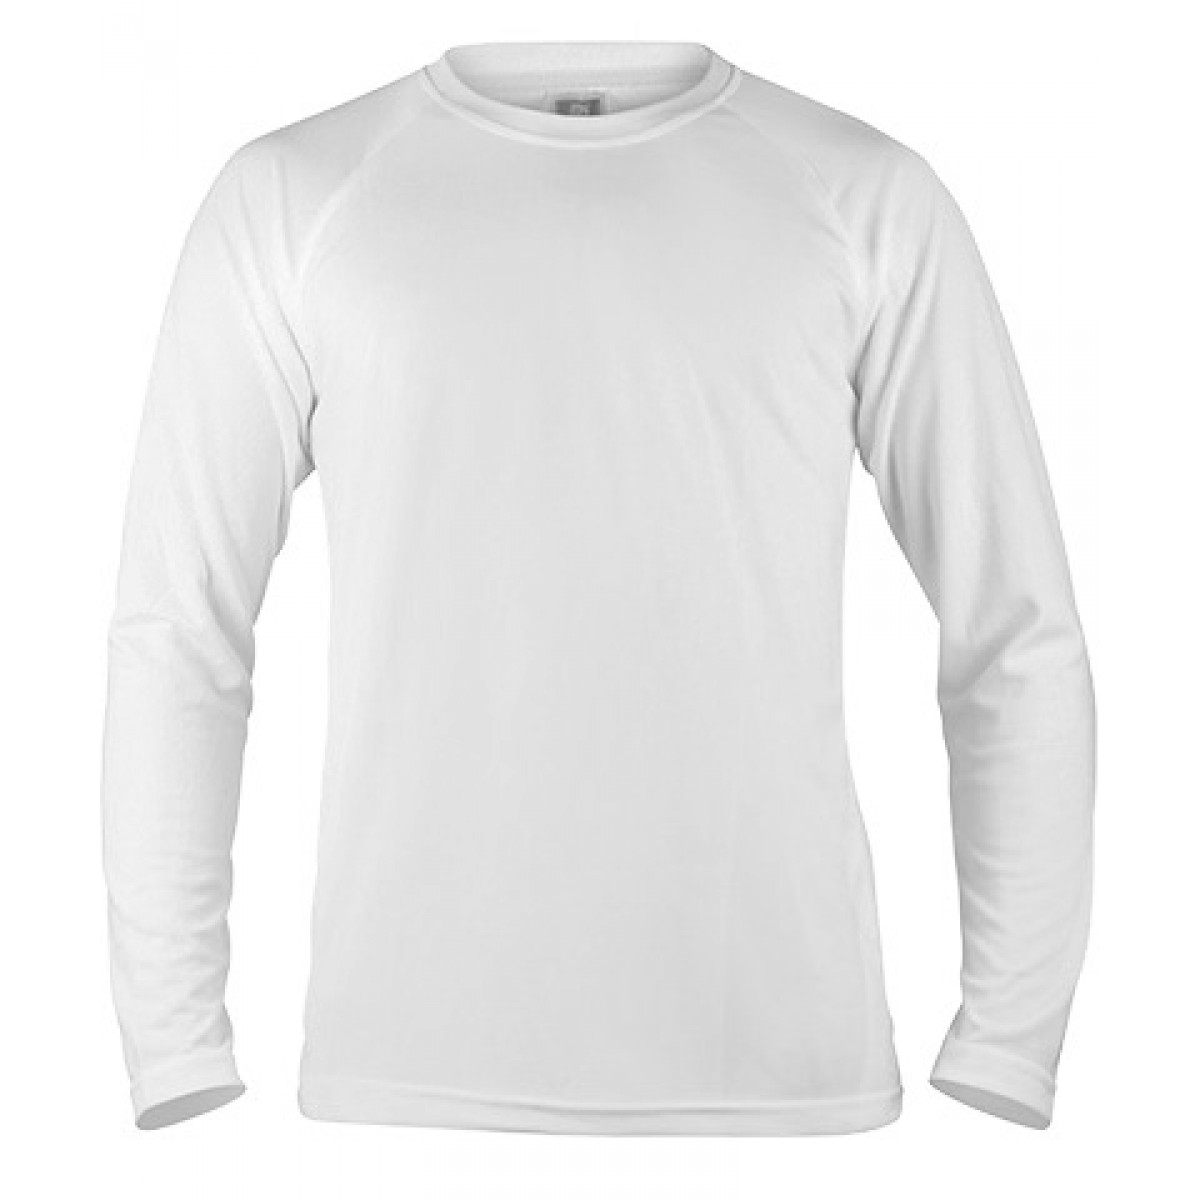 Long Sleeve Mesh Performance T-shirt-White-2XL